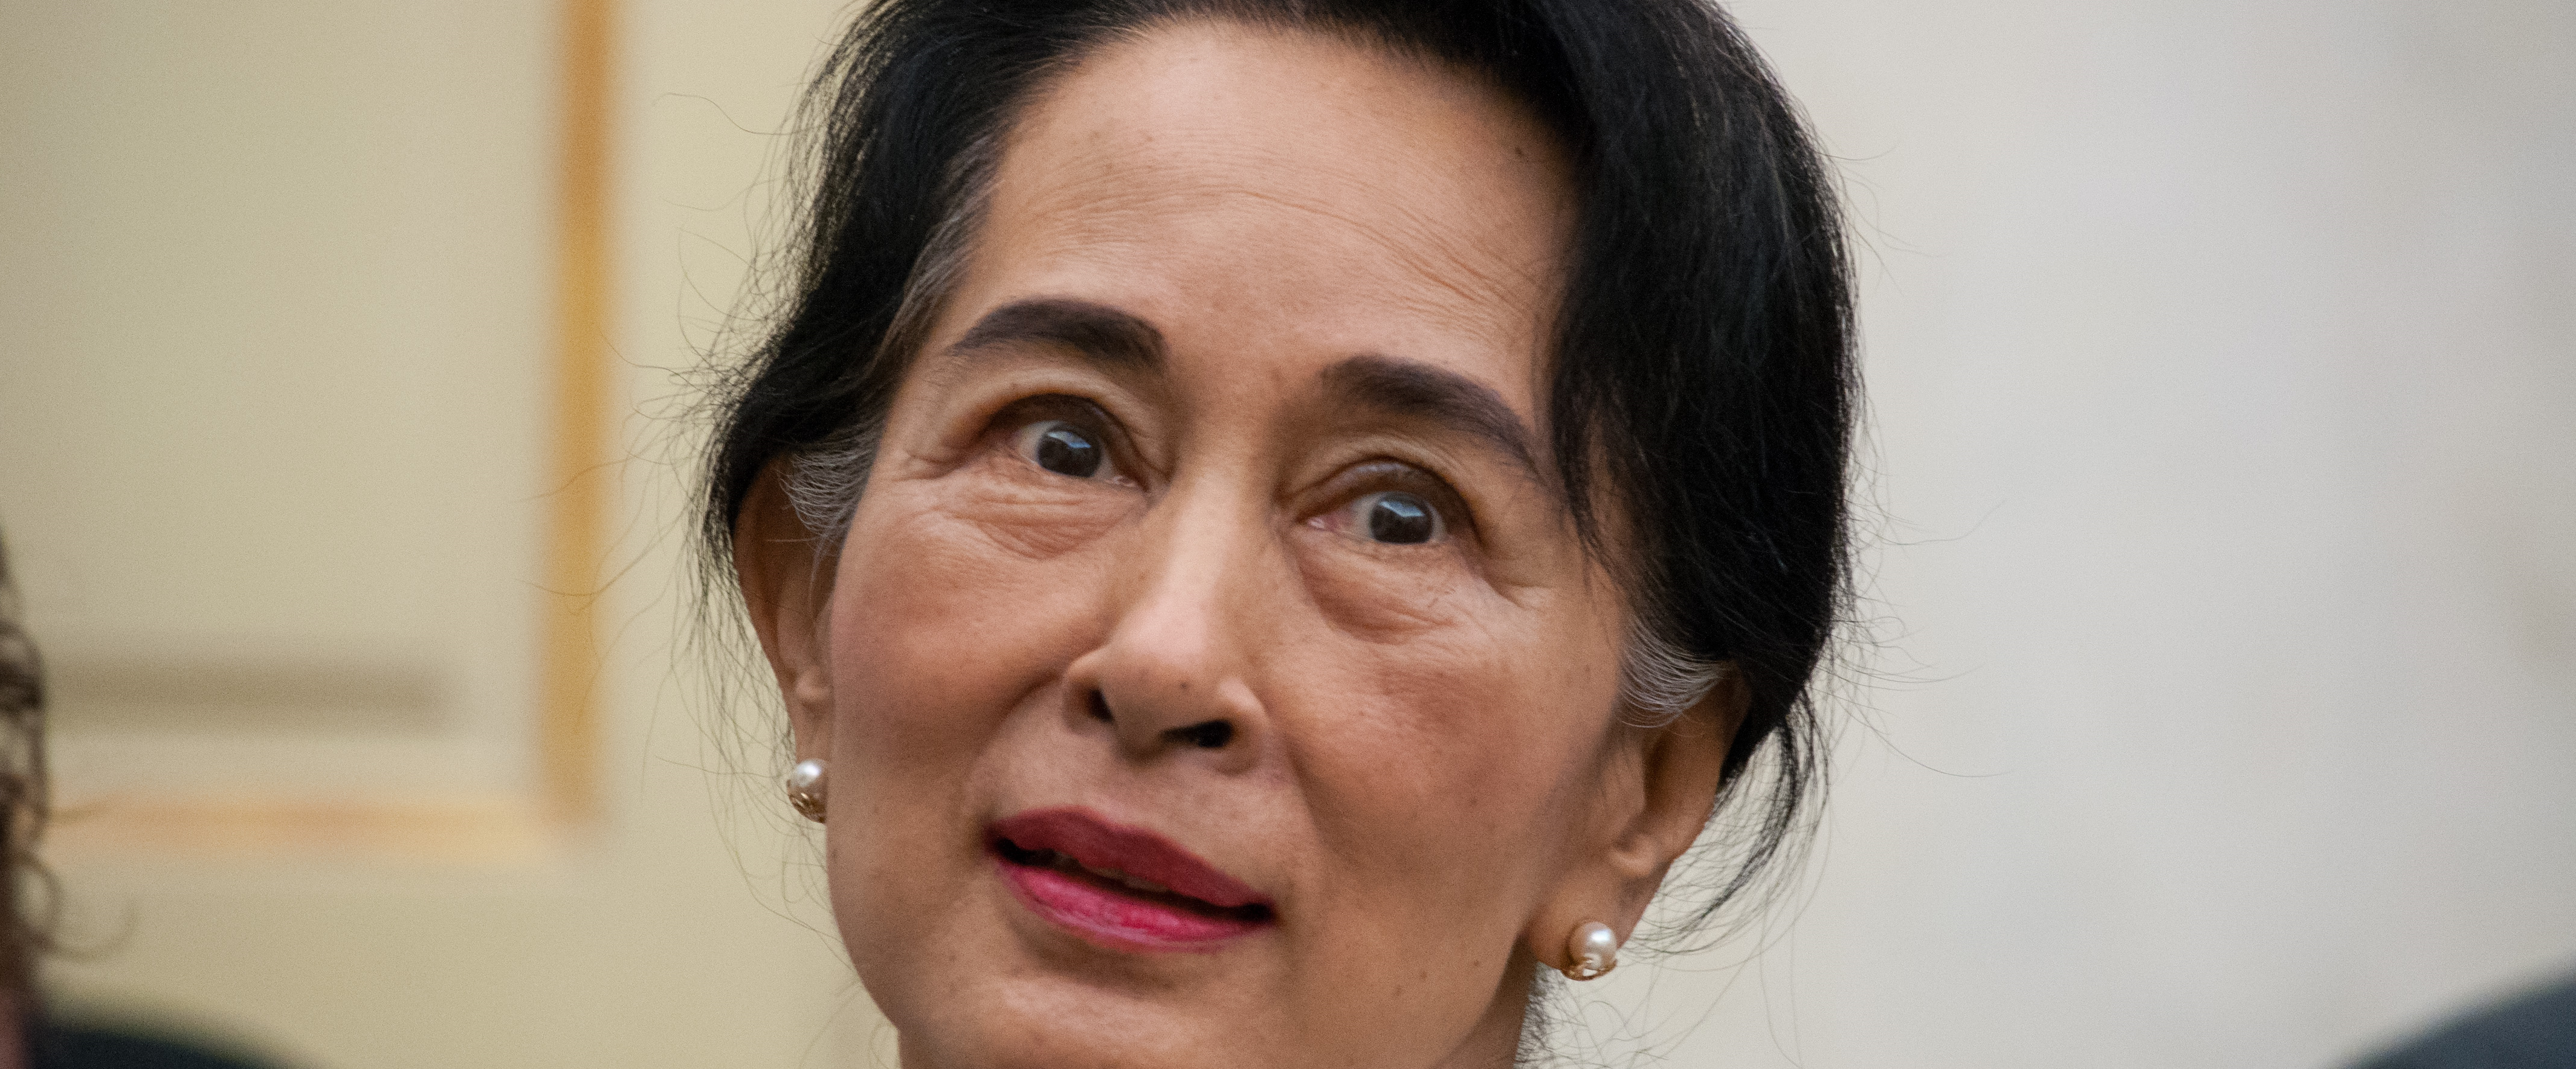 Aung San Suu Kyi named in criminal complaint of genocide against Myanmar's Rohingya